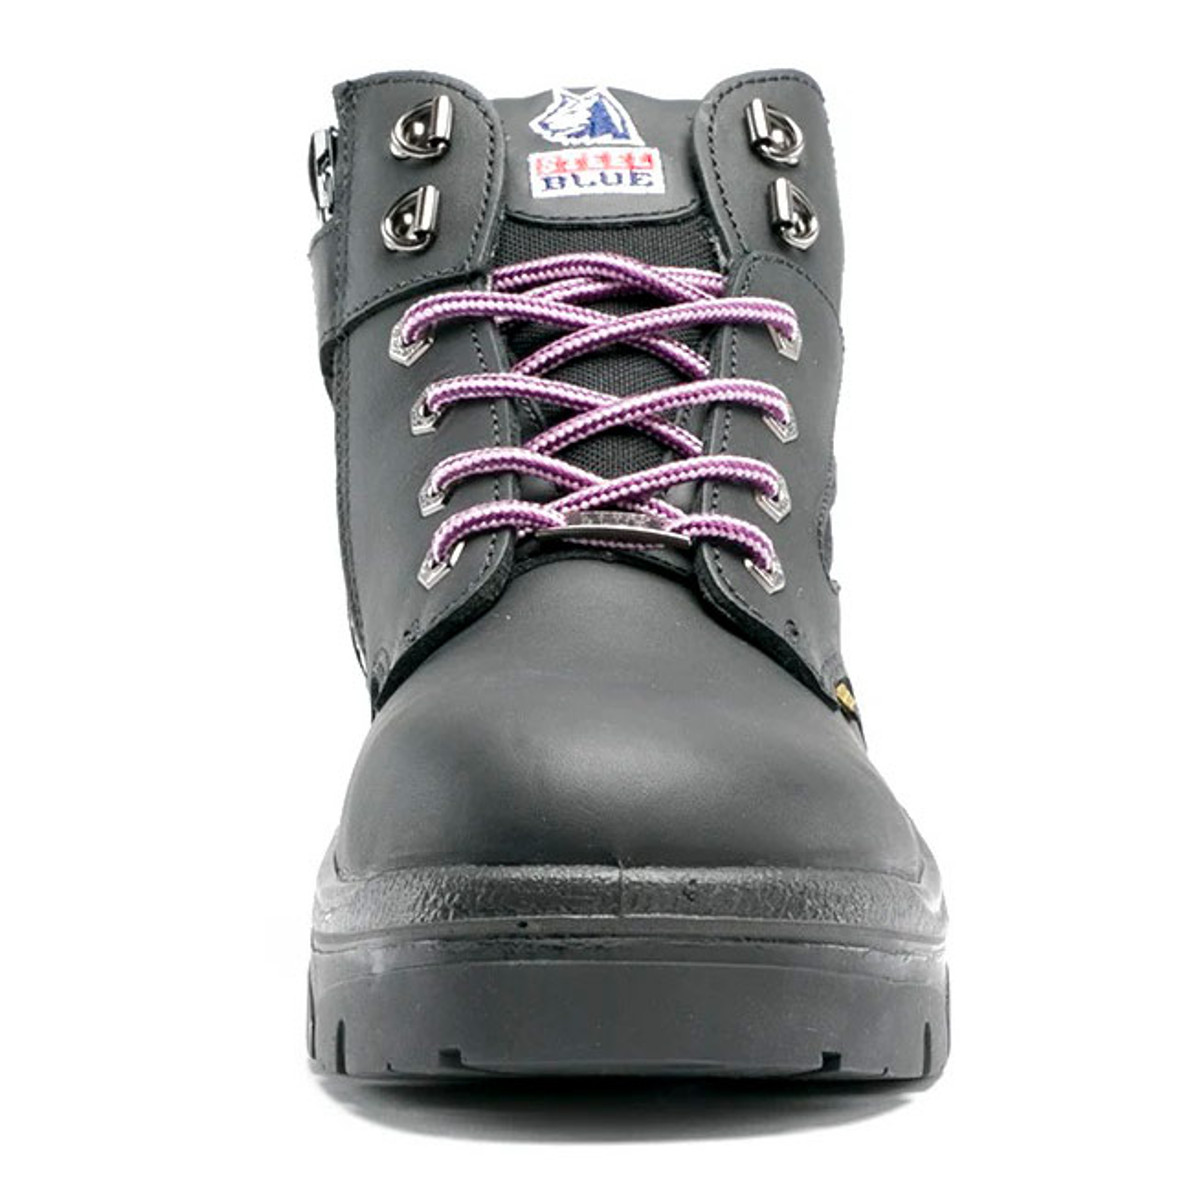 Safety Work Boots Steel Blue Parkes Leather Hiker Boots with Zip side 392658